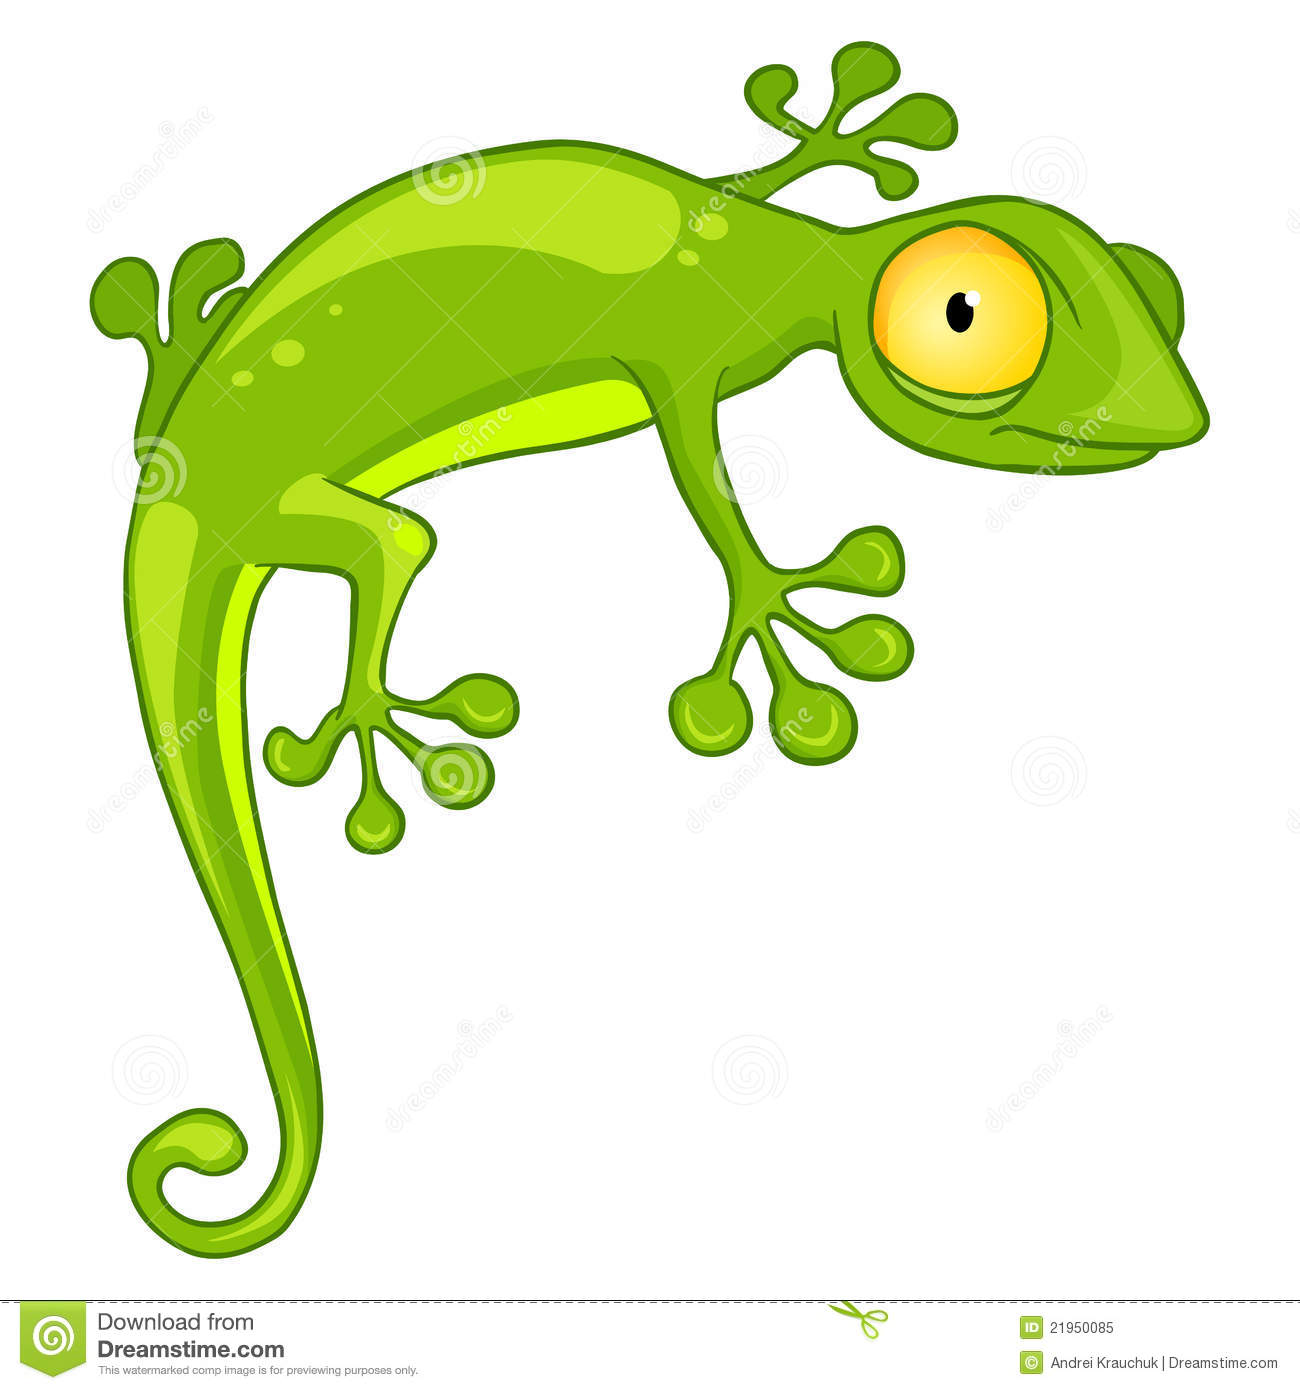 Cartoon Character Lizard Royalty Free Stock Photo - Image: 21950085